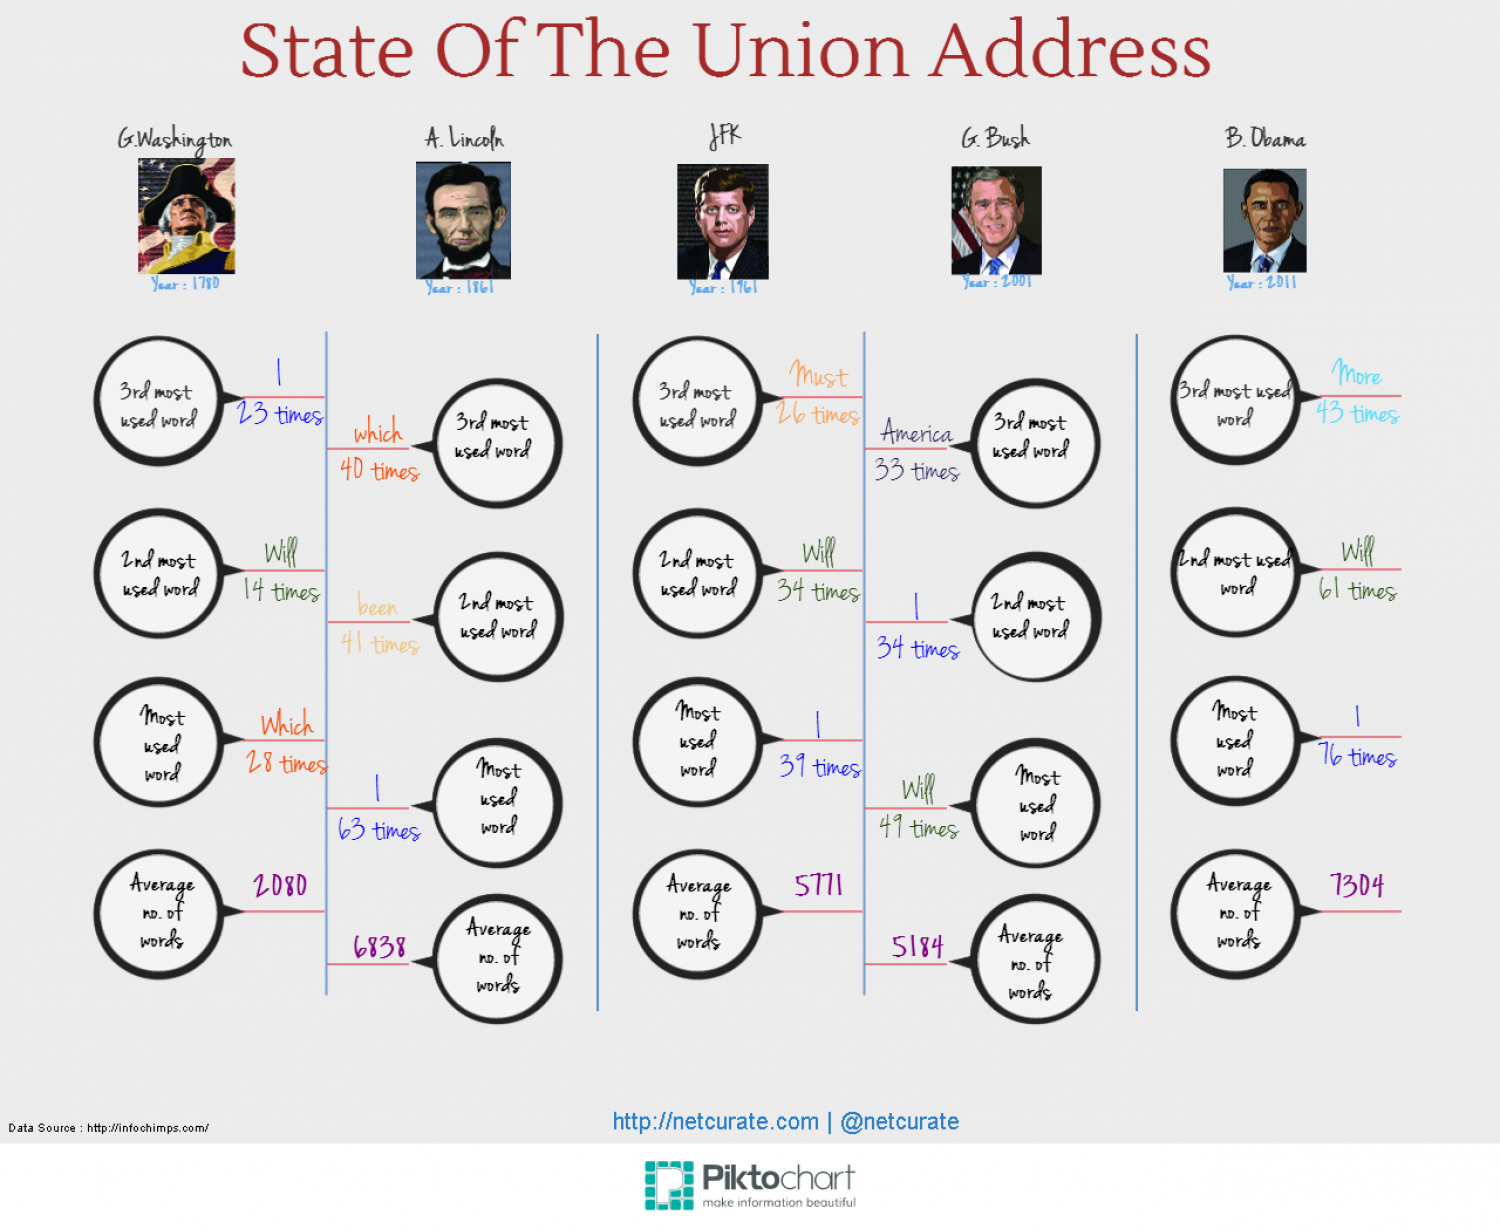 State of the Union Address by US Presidents Infographic